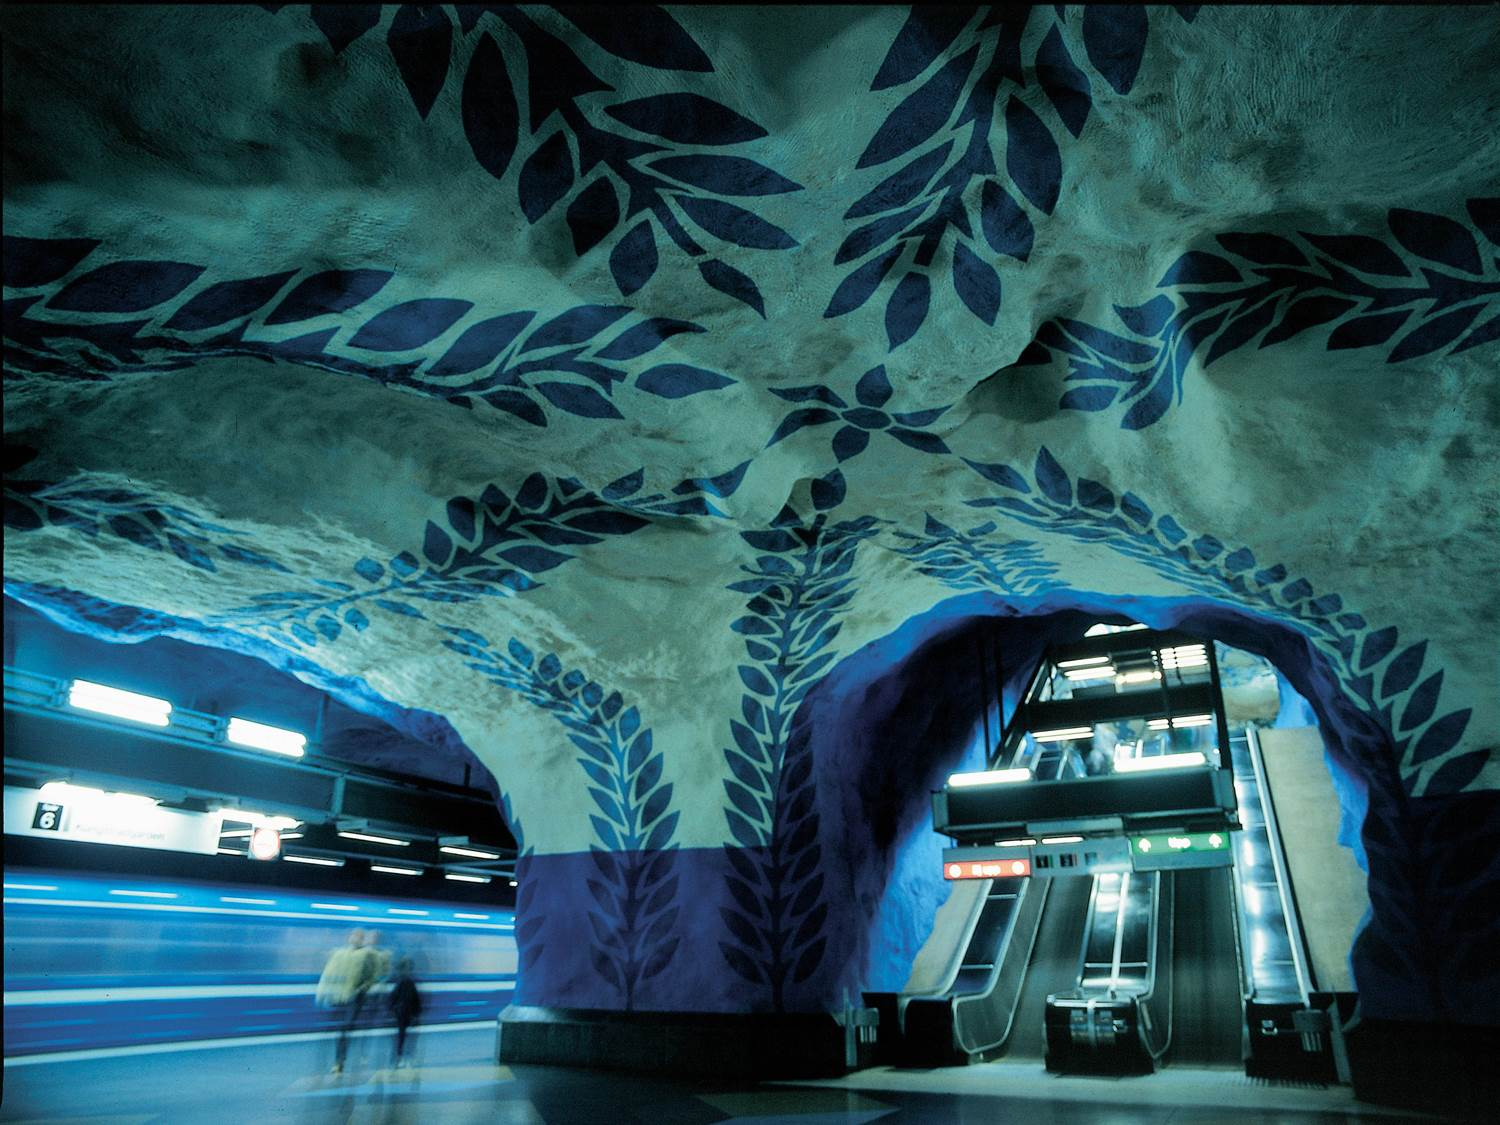 Called The world's longest art exhibition - The Stockholm metro